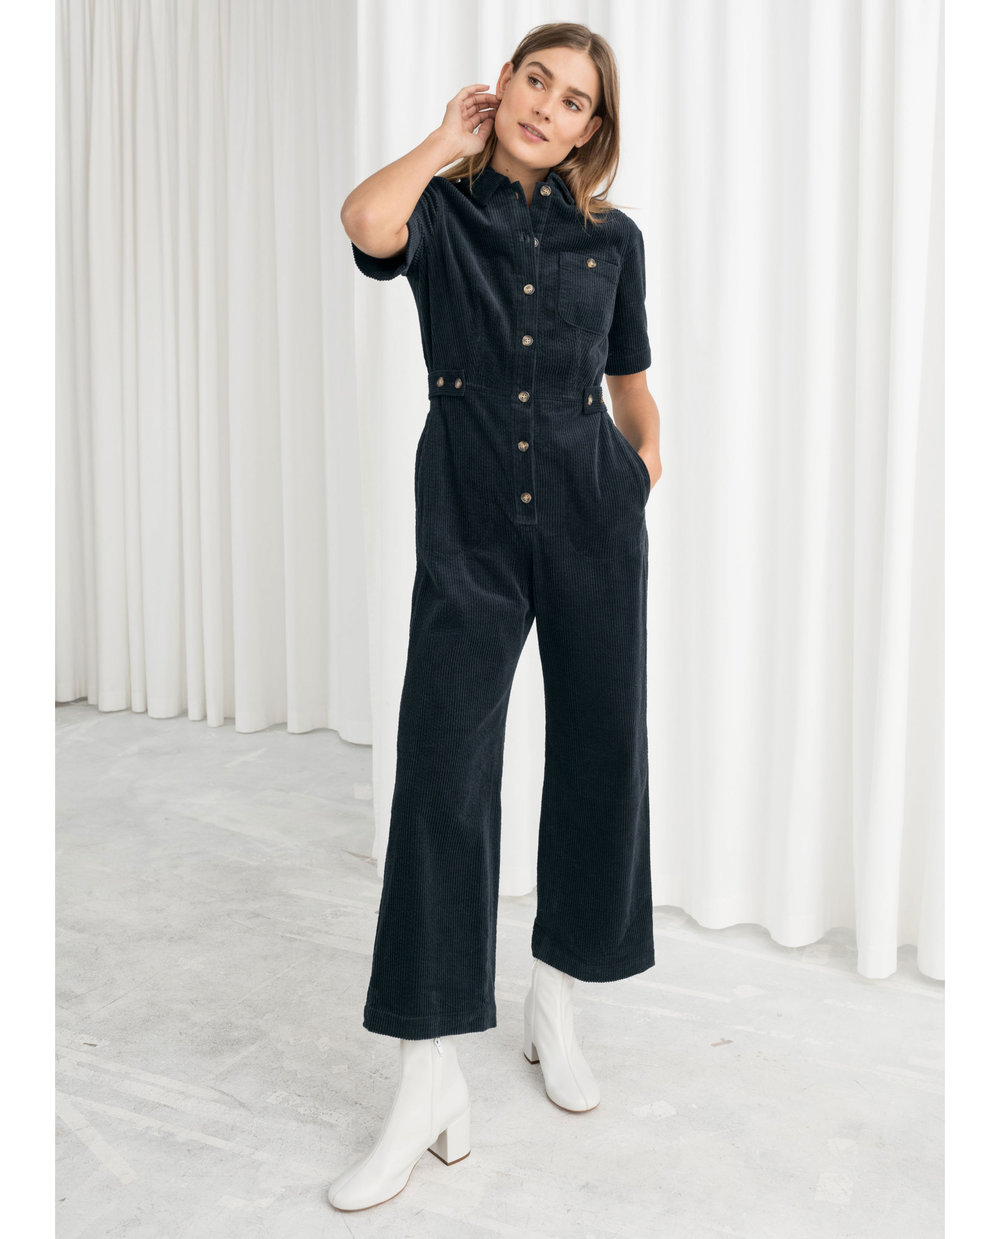 & Other Stories corduroy jumpsuit     $129